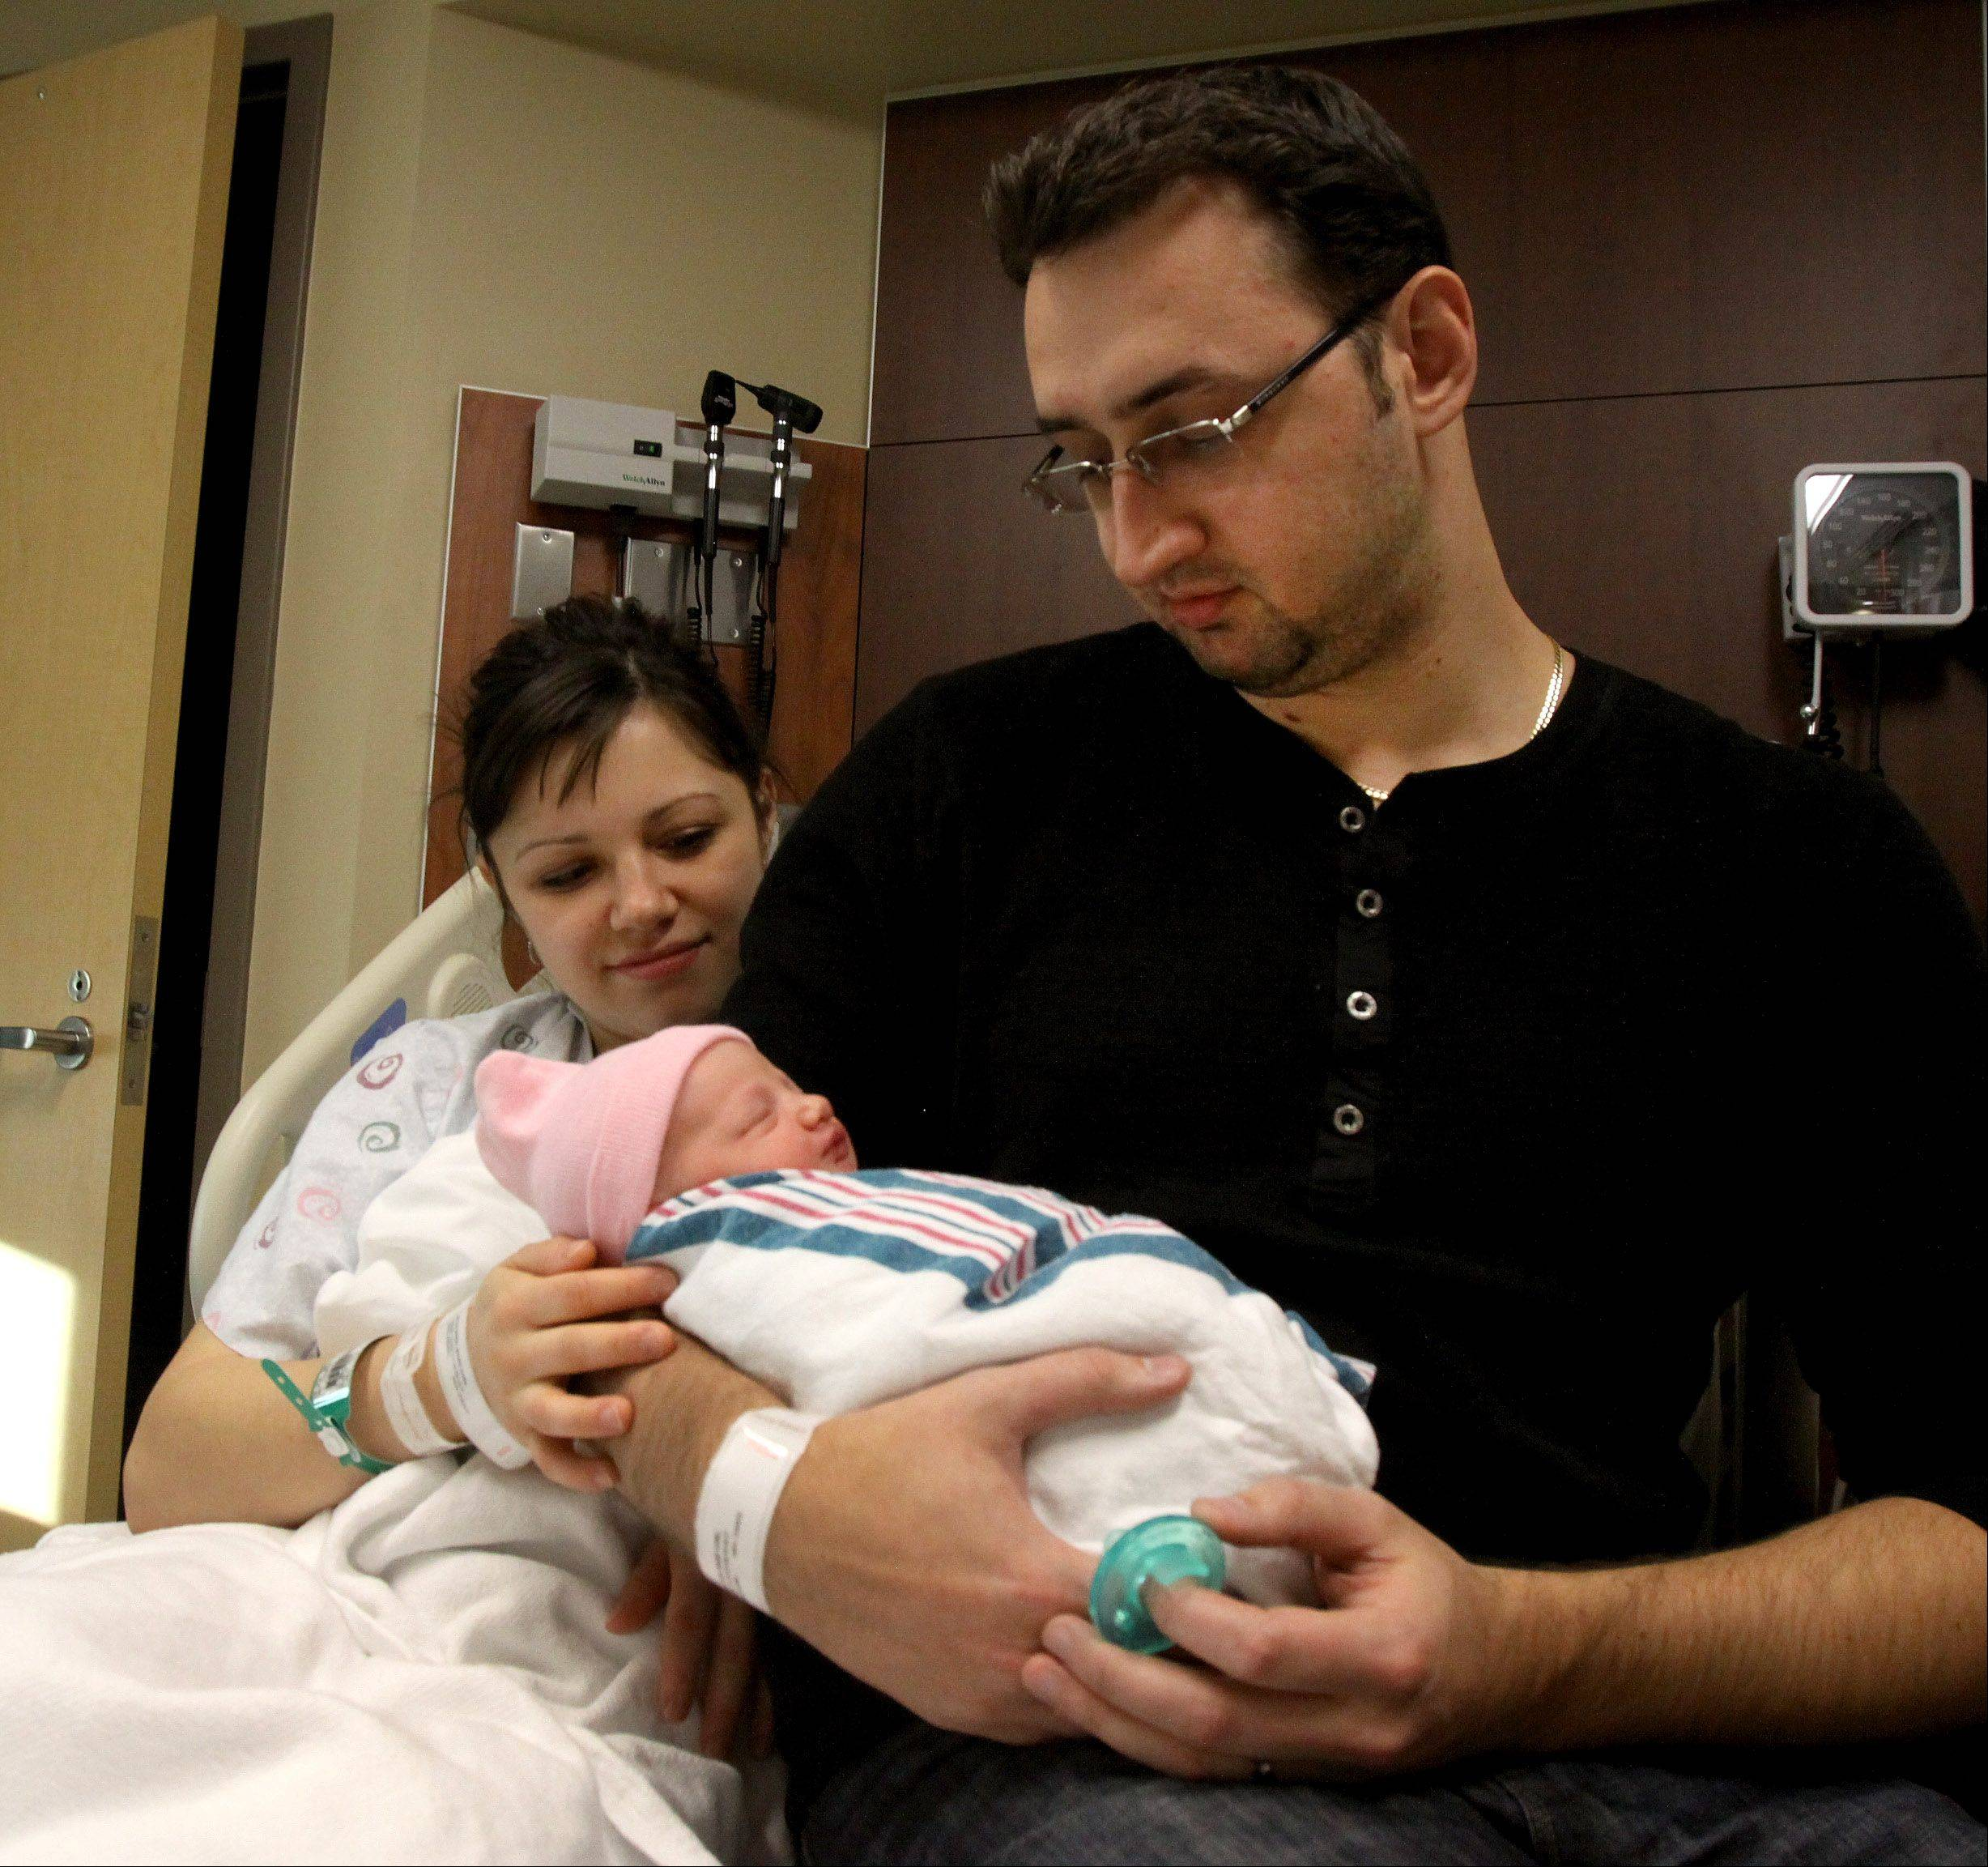 Snezhana and Igor Kalinin of Riverside hold Isabella, who was born at 12:50 a.m. Jan. 1 at Adventist Hinsdale Hospital in Hinsdale. The Kalinins are from Riverside. Isabella has a sister, Ella, who is 3. She was the second baby born in DuPage County on New Year's Day.